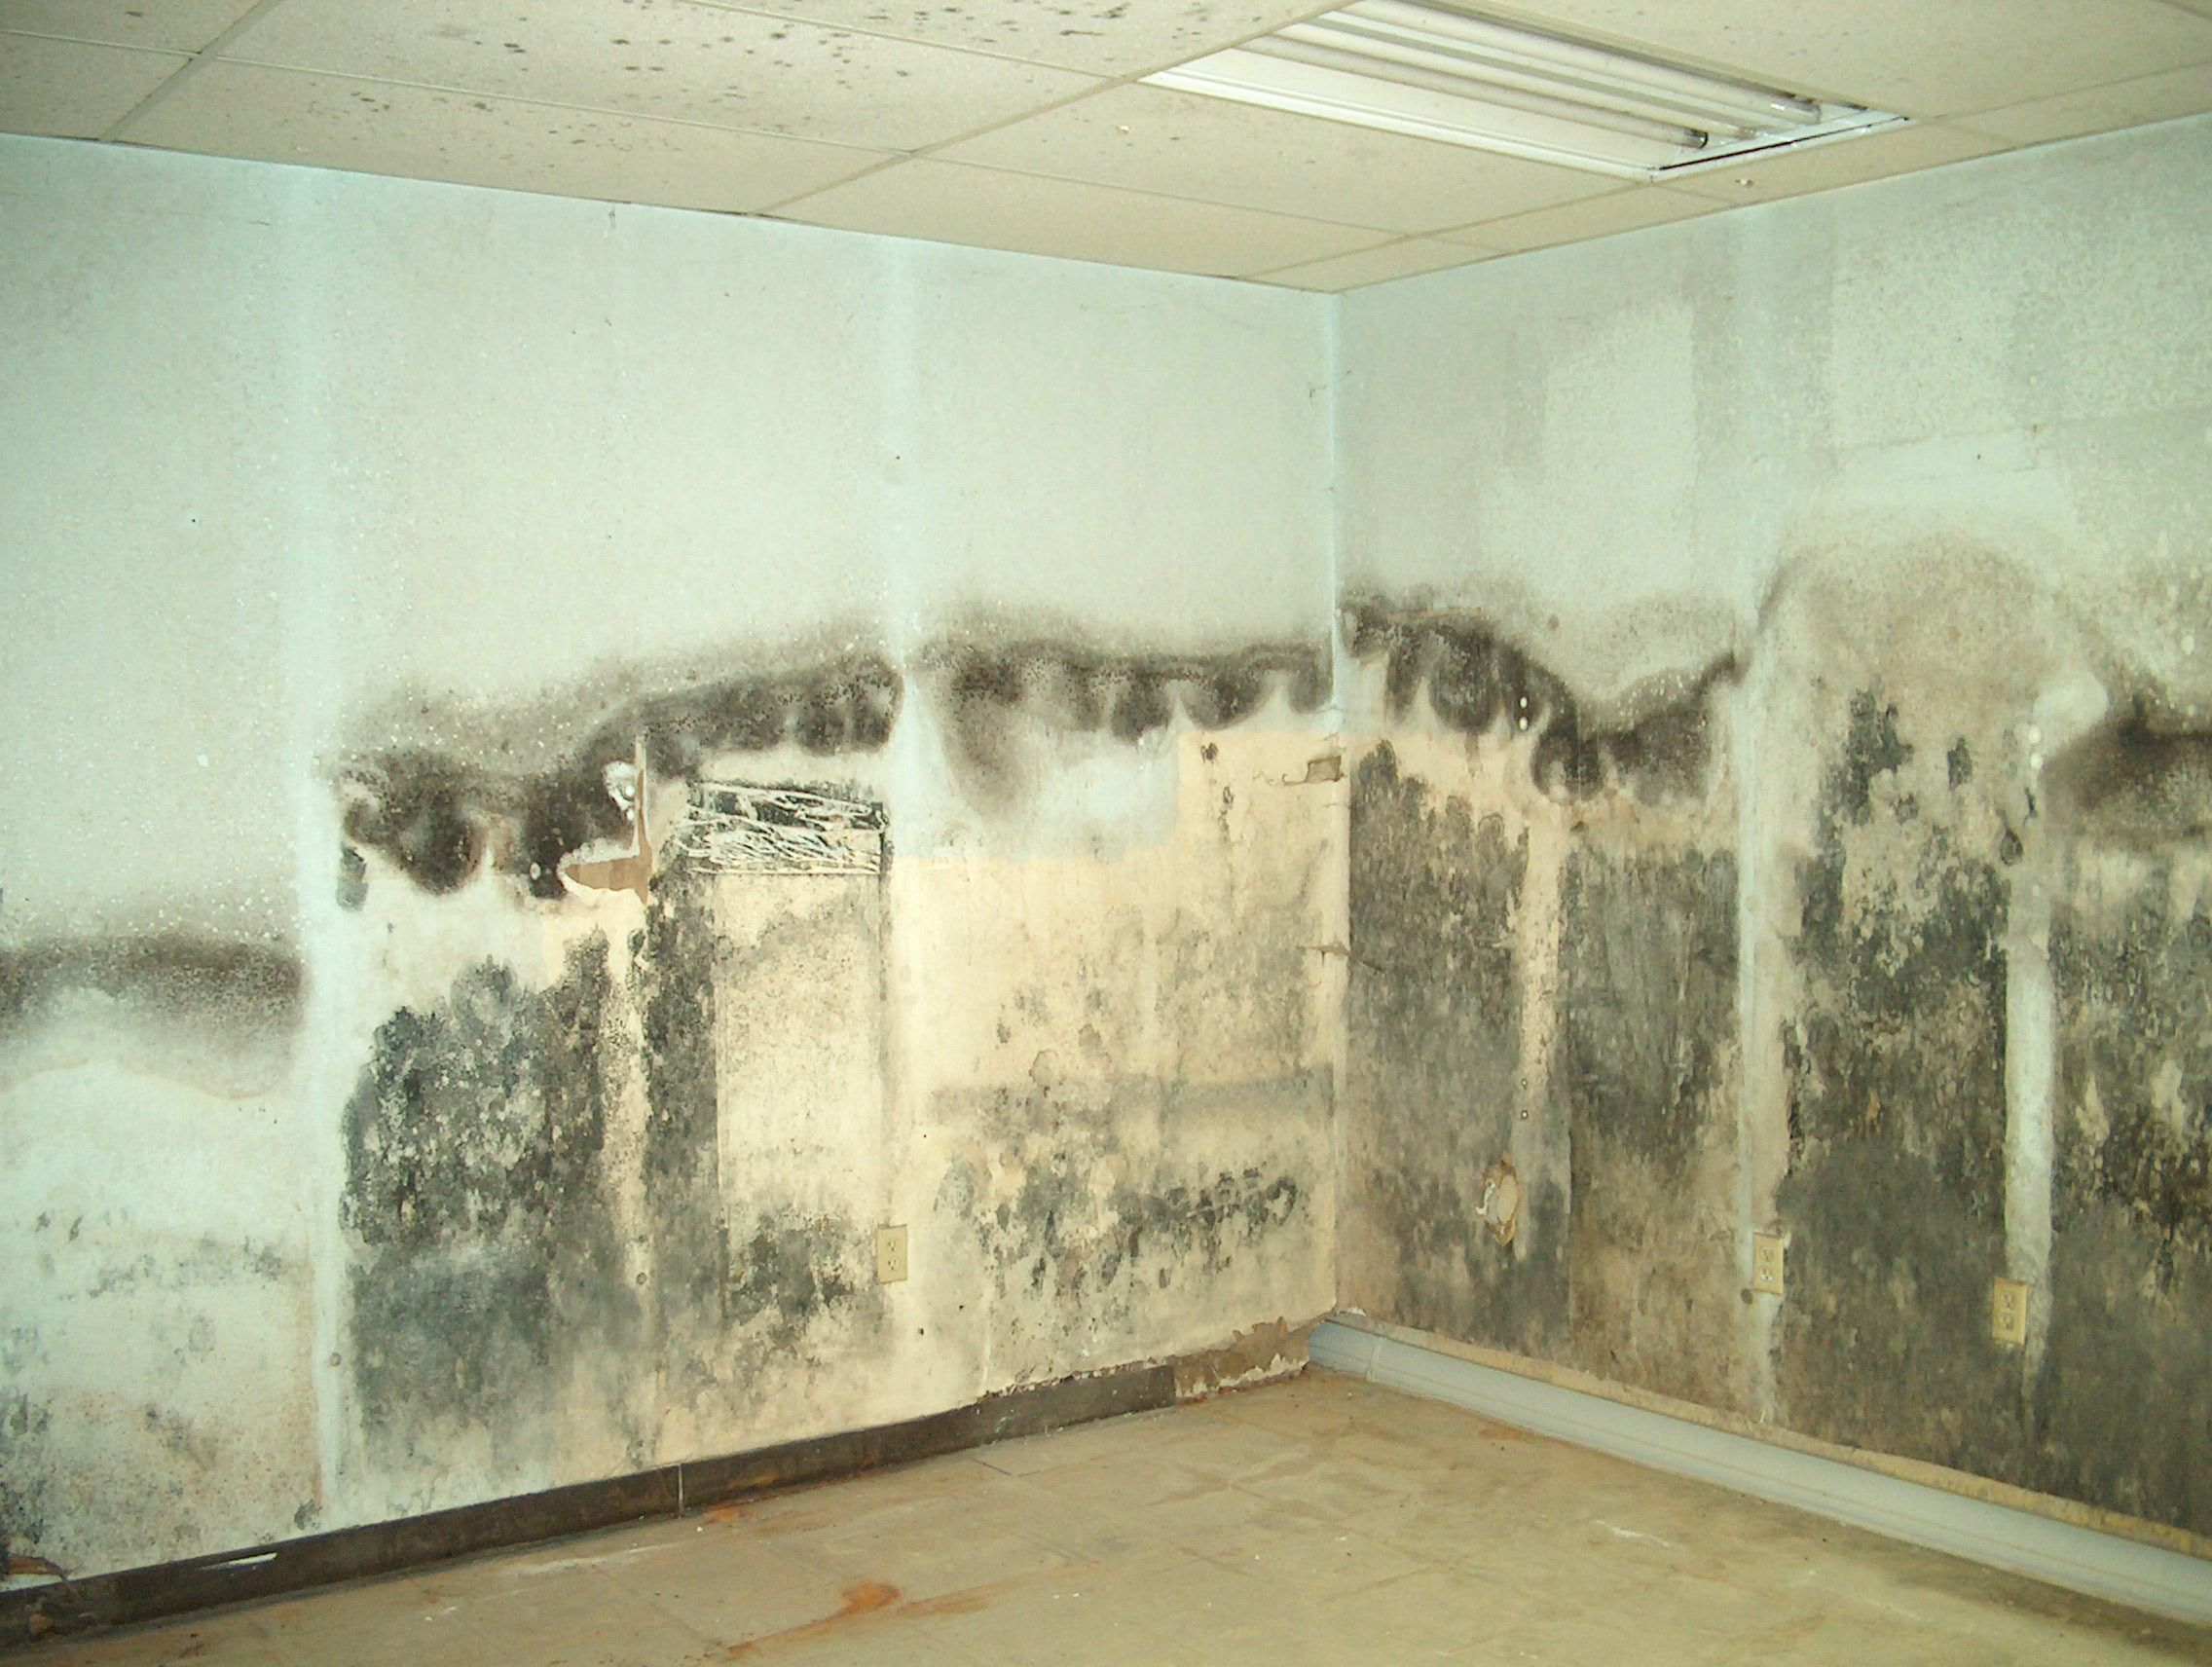 mold damage removal and remediation